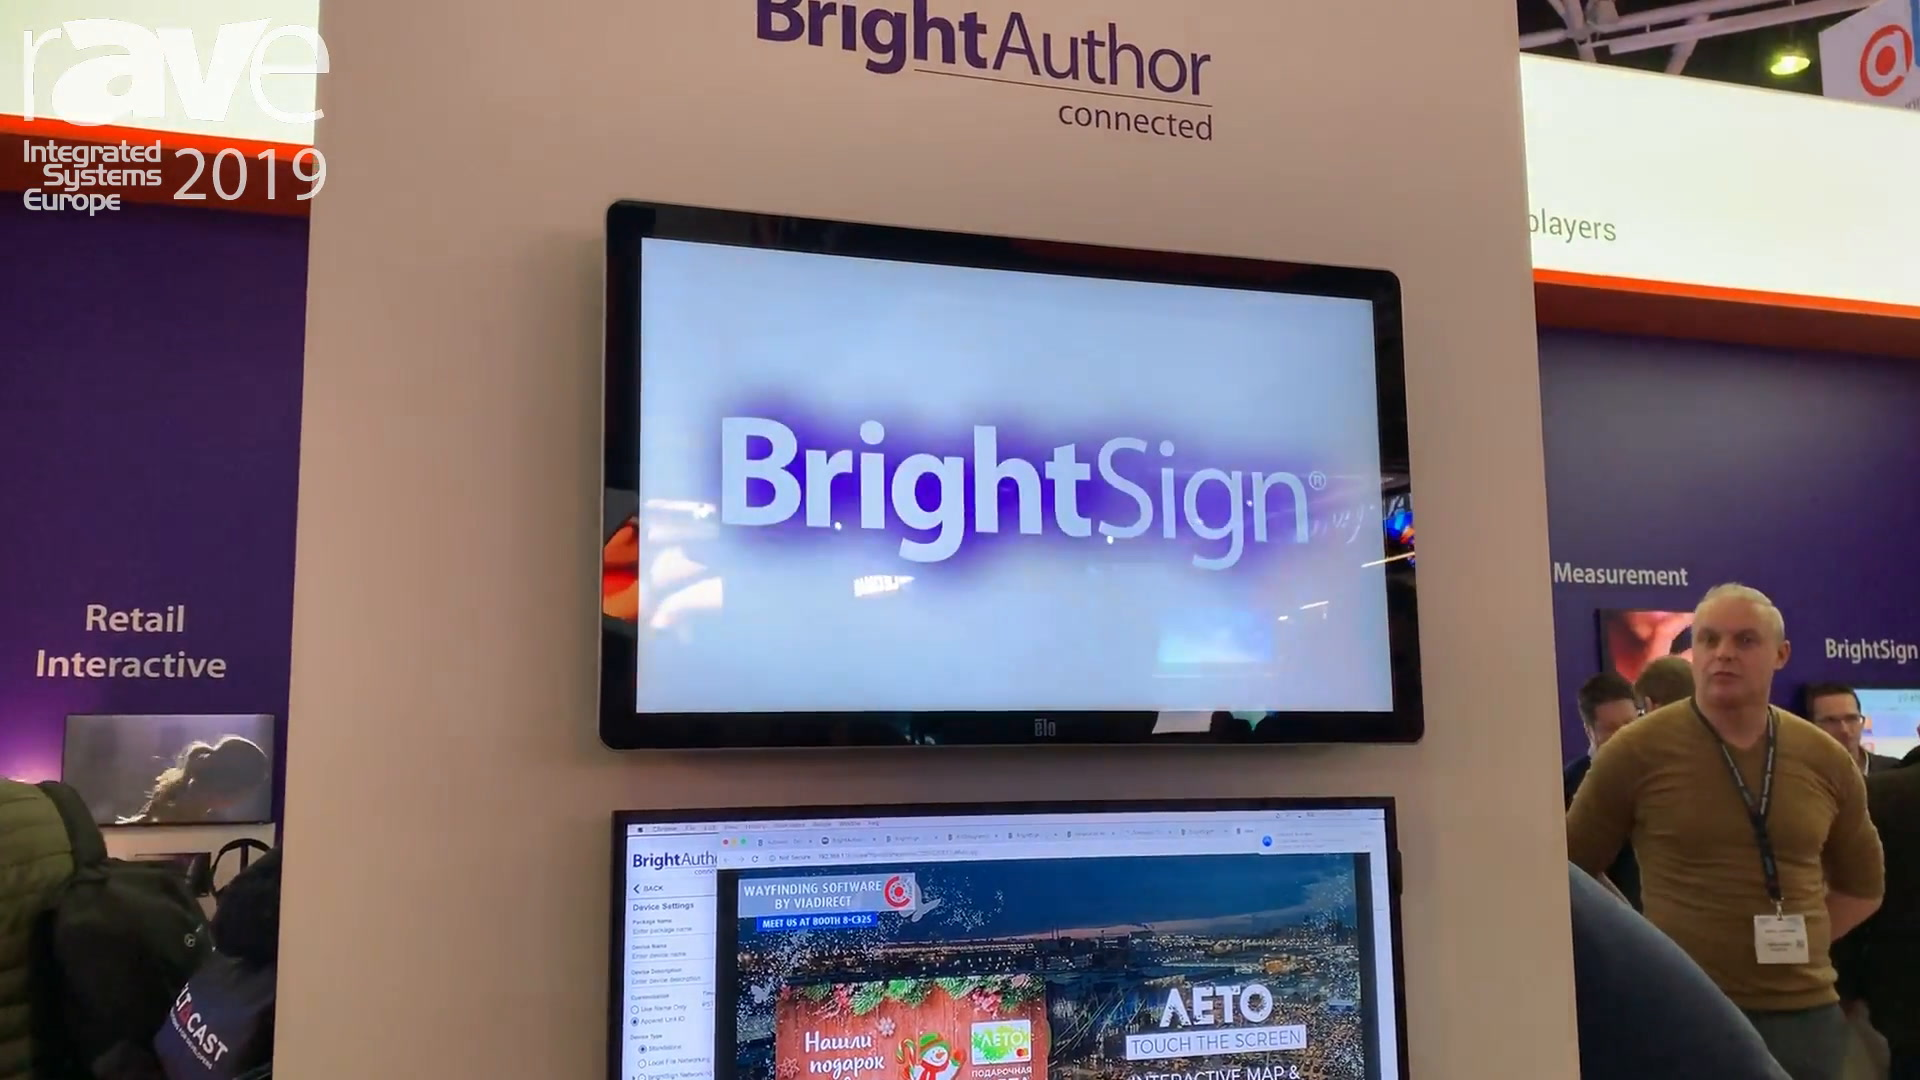 DSE 2019: BrightSign Showcases BSN.cloud Architecture for Control, Diagnostics and Content Management